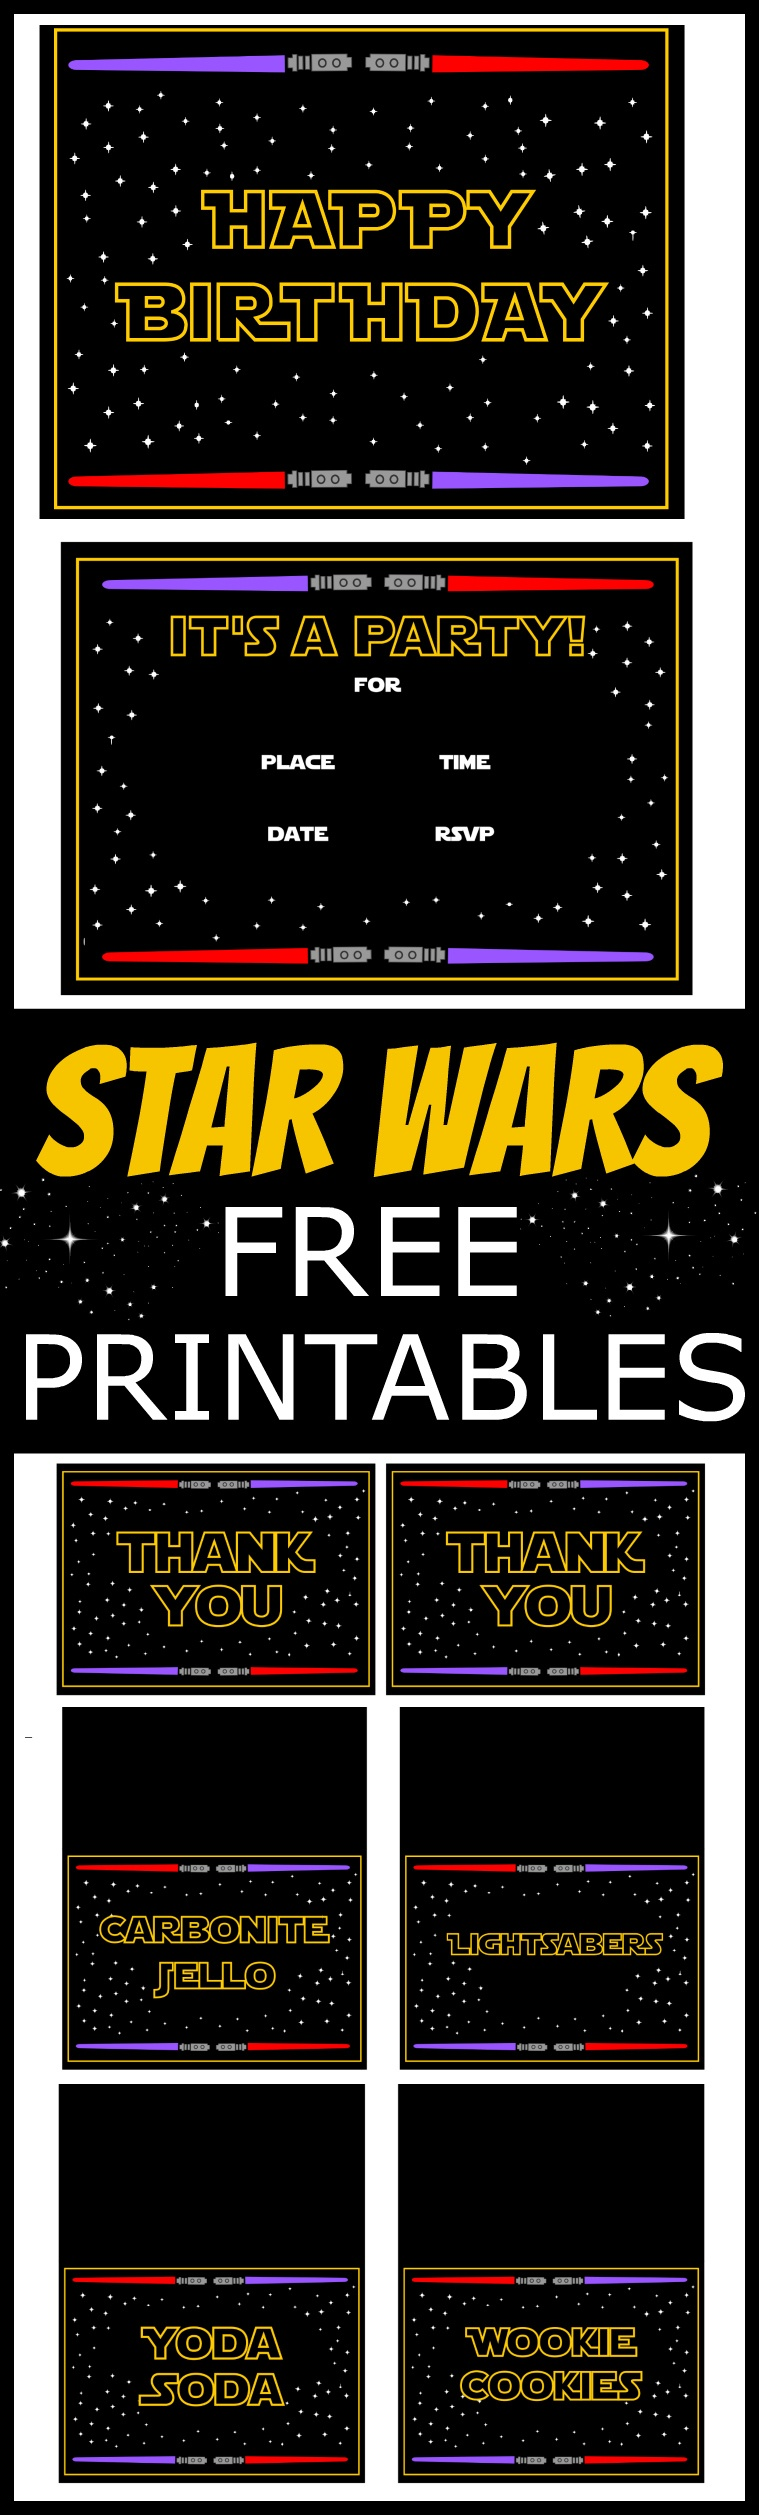 Star Wars Free Printables | Catch My Party - Free Star Wars Printables